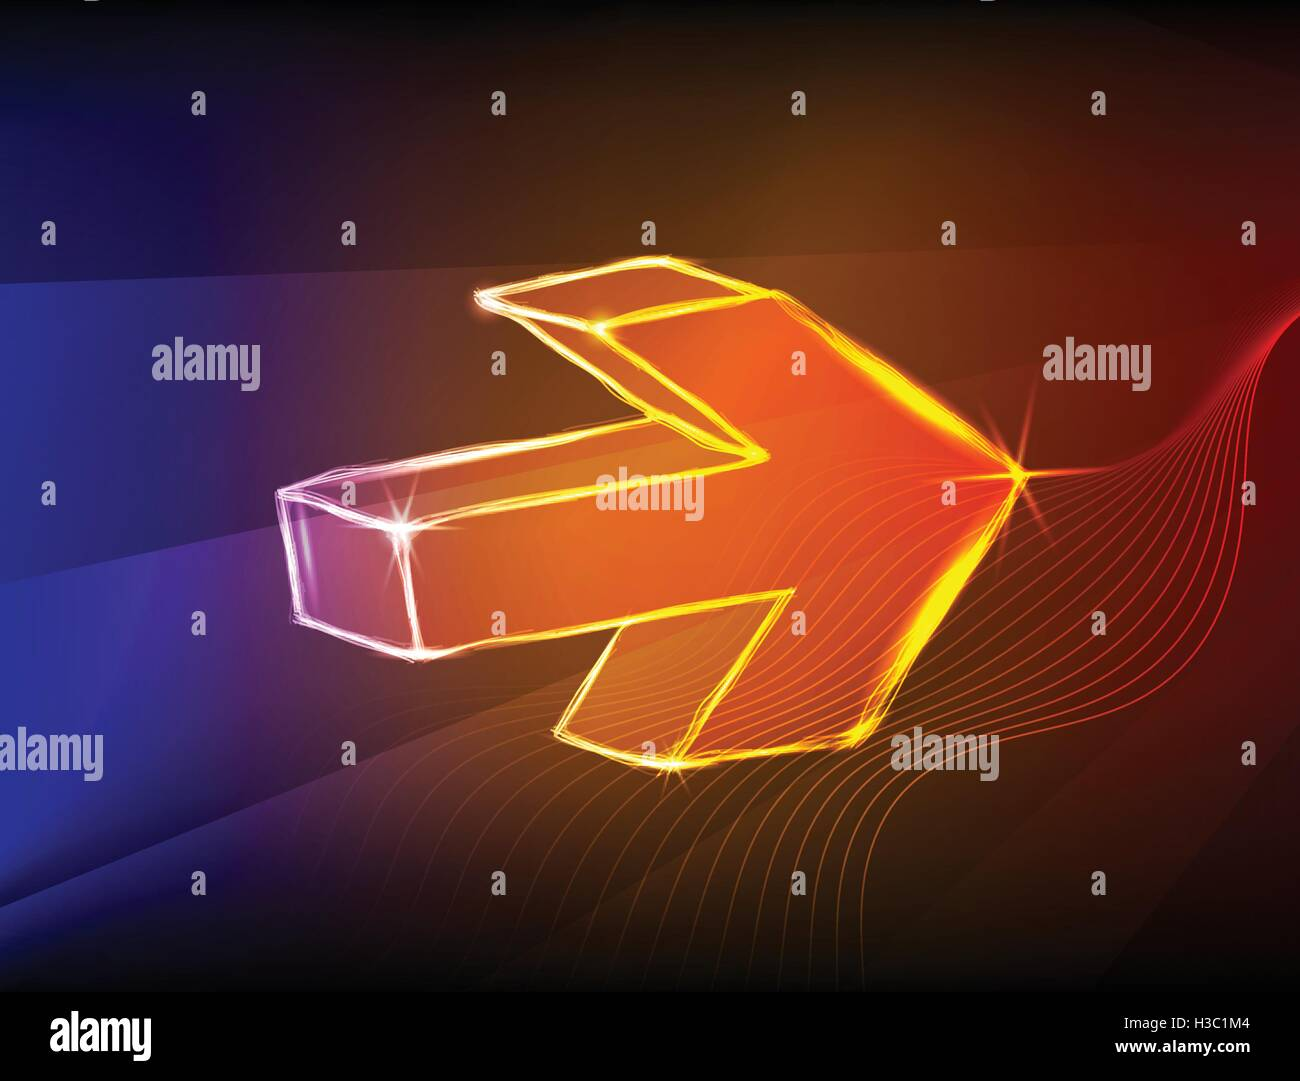 Abstract arrows light background - Stock Image